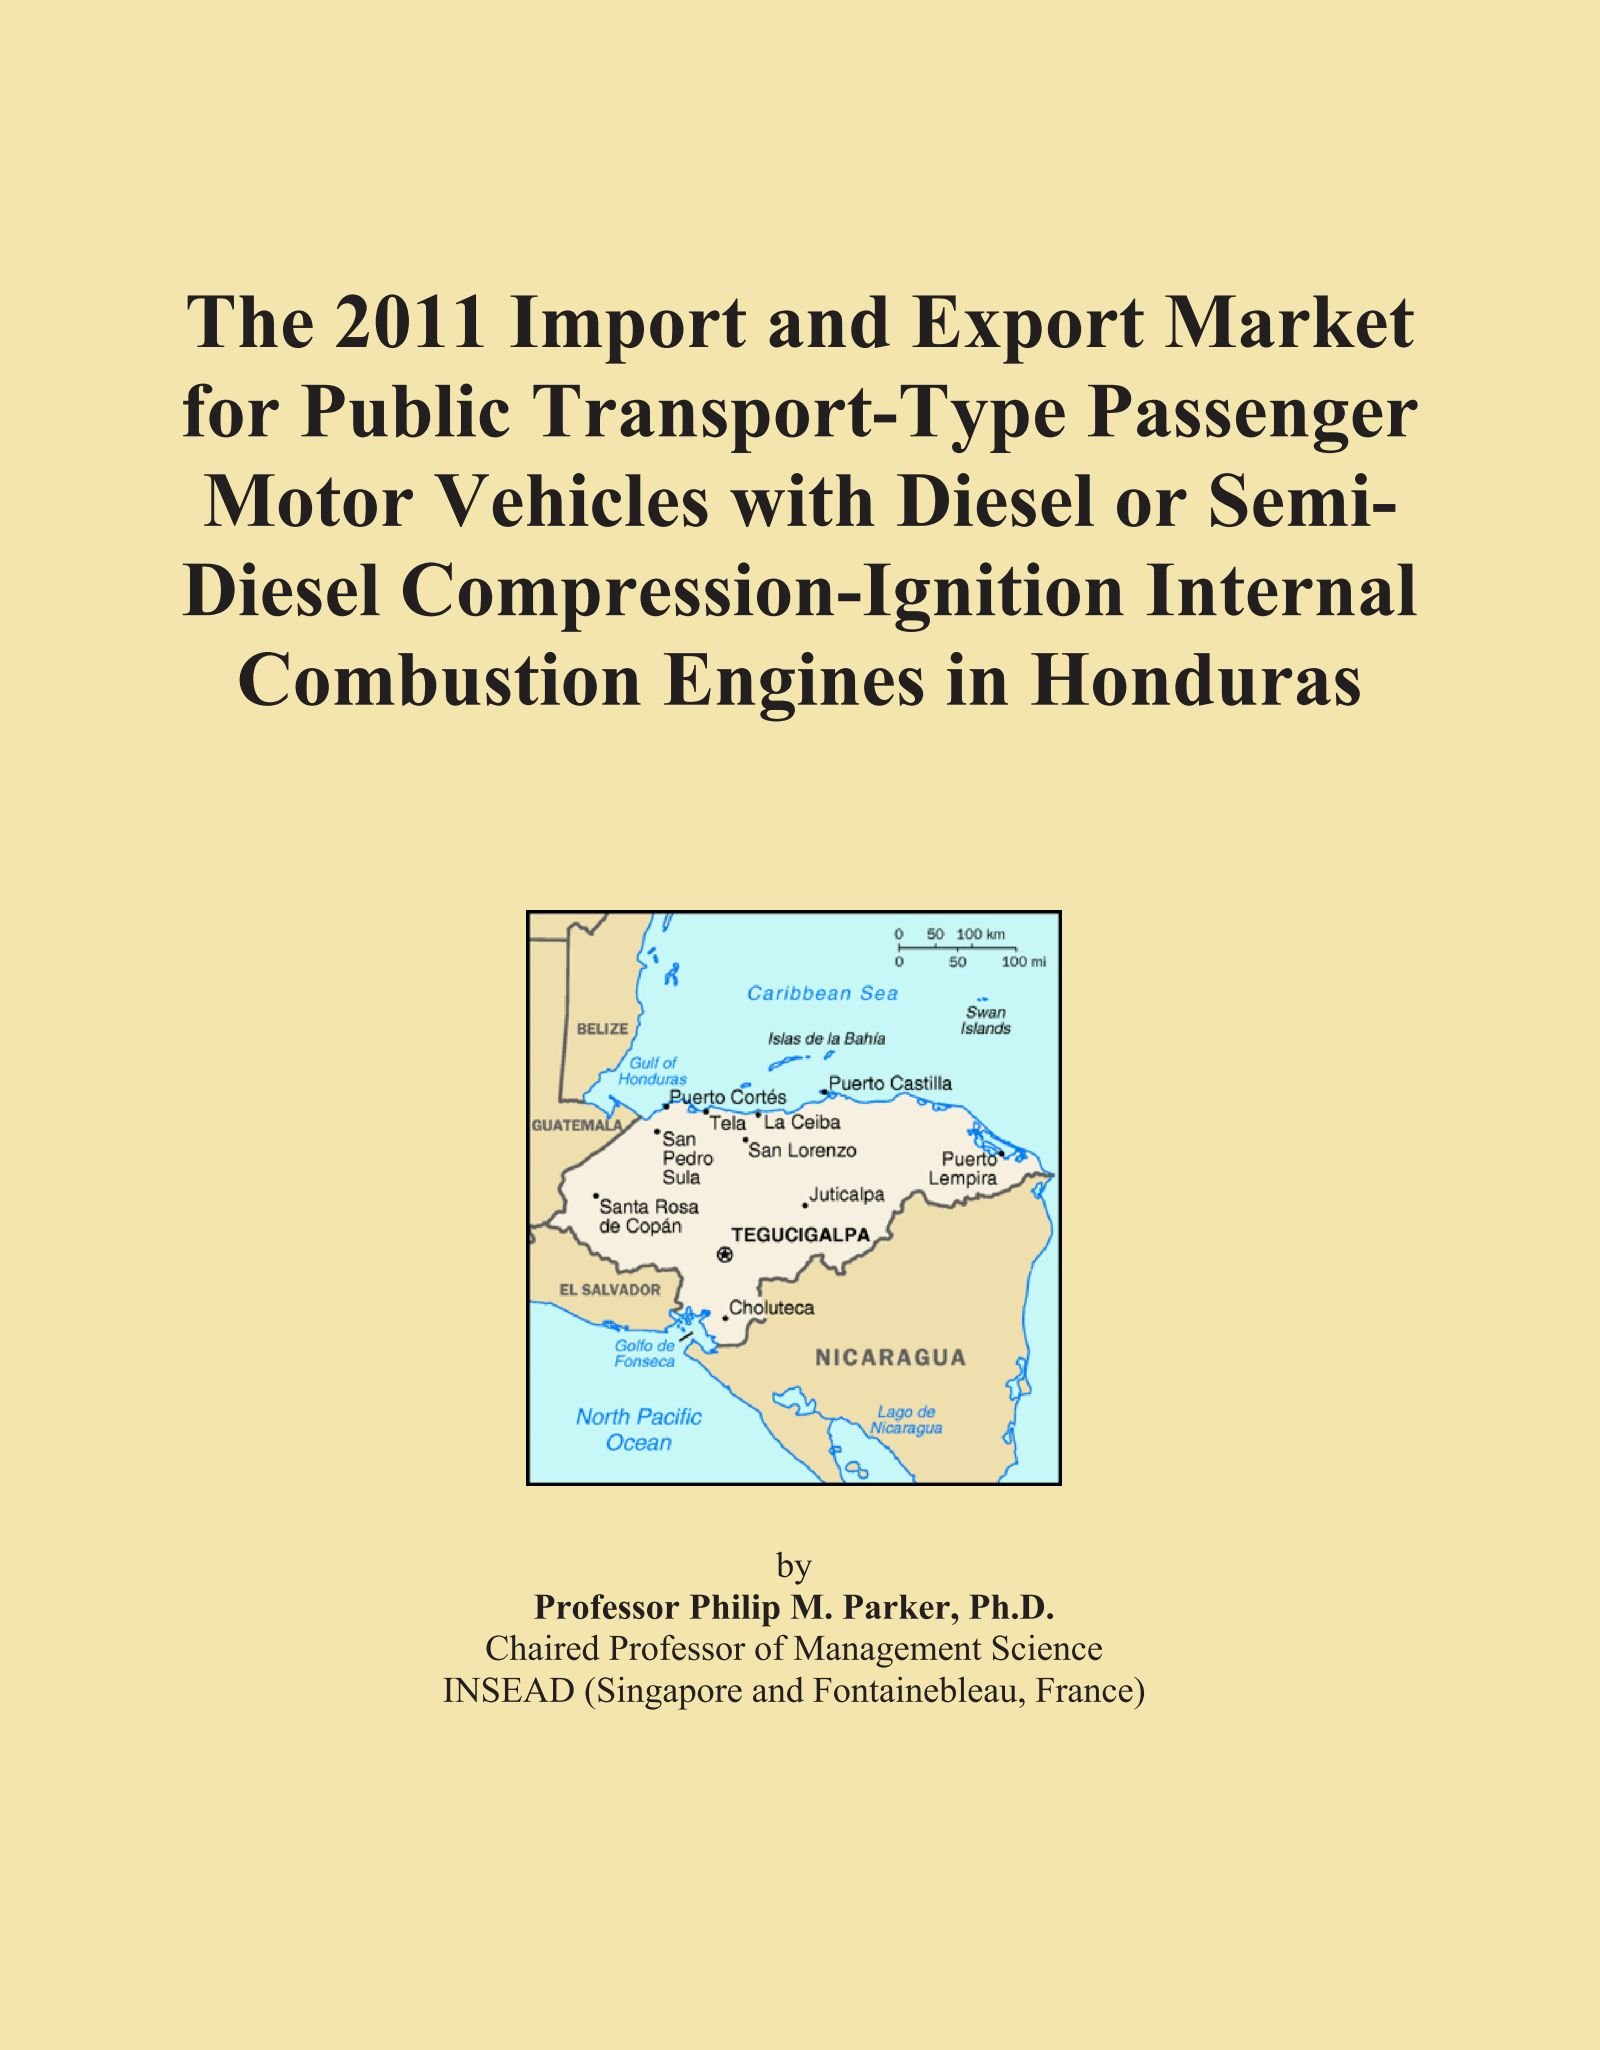 Download The 2011 Import and Export Market for Public Transport-Type Passenger Motor Vehicles with Diesel or Semi-Diesel Compression-Ignition Internal Combustion Engines in Honduras ebook